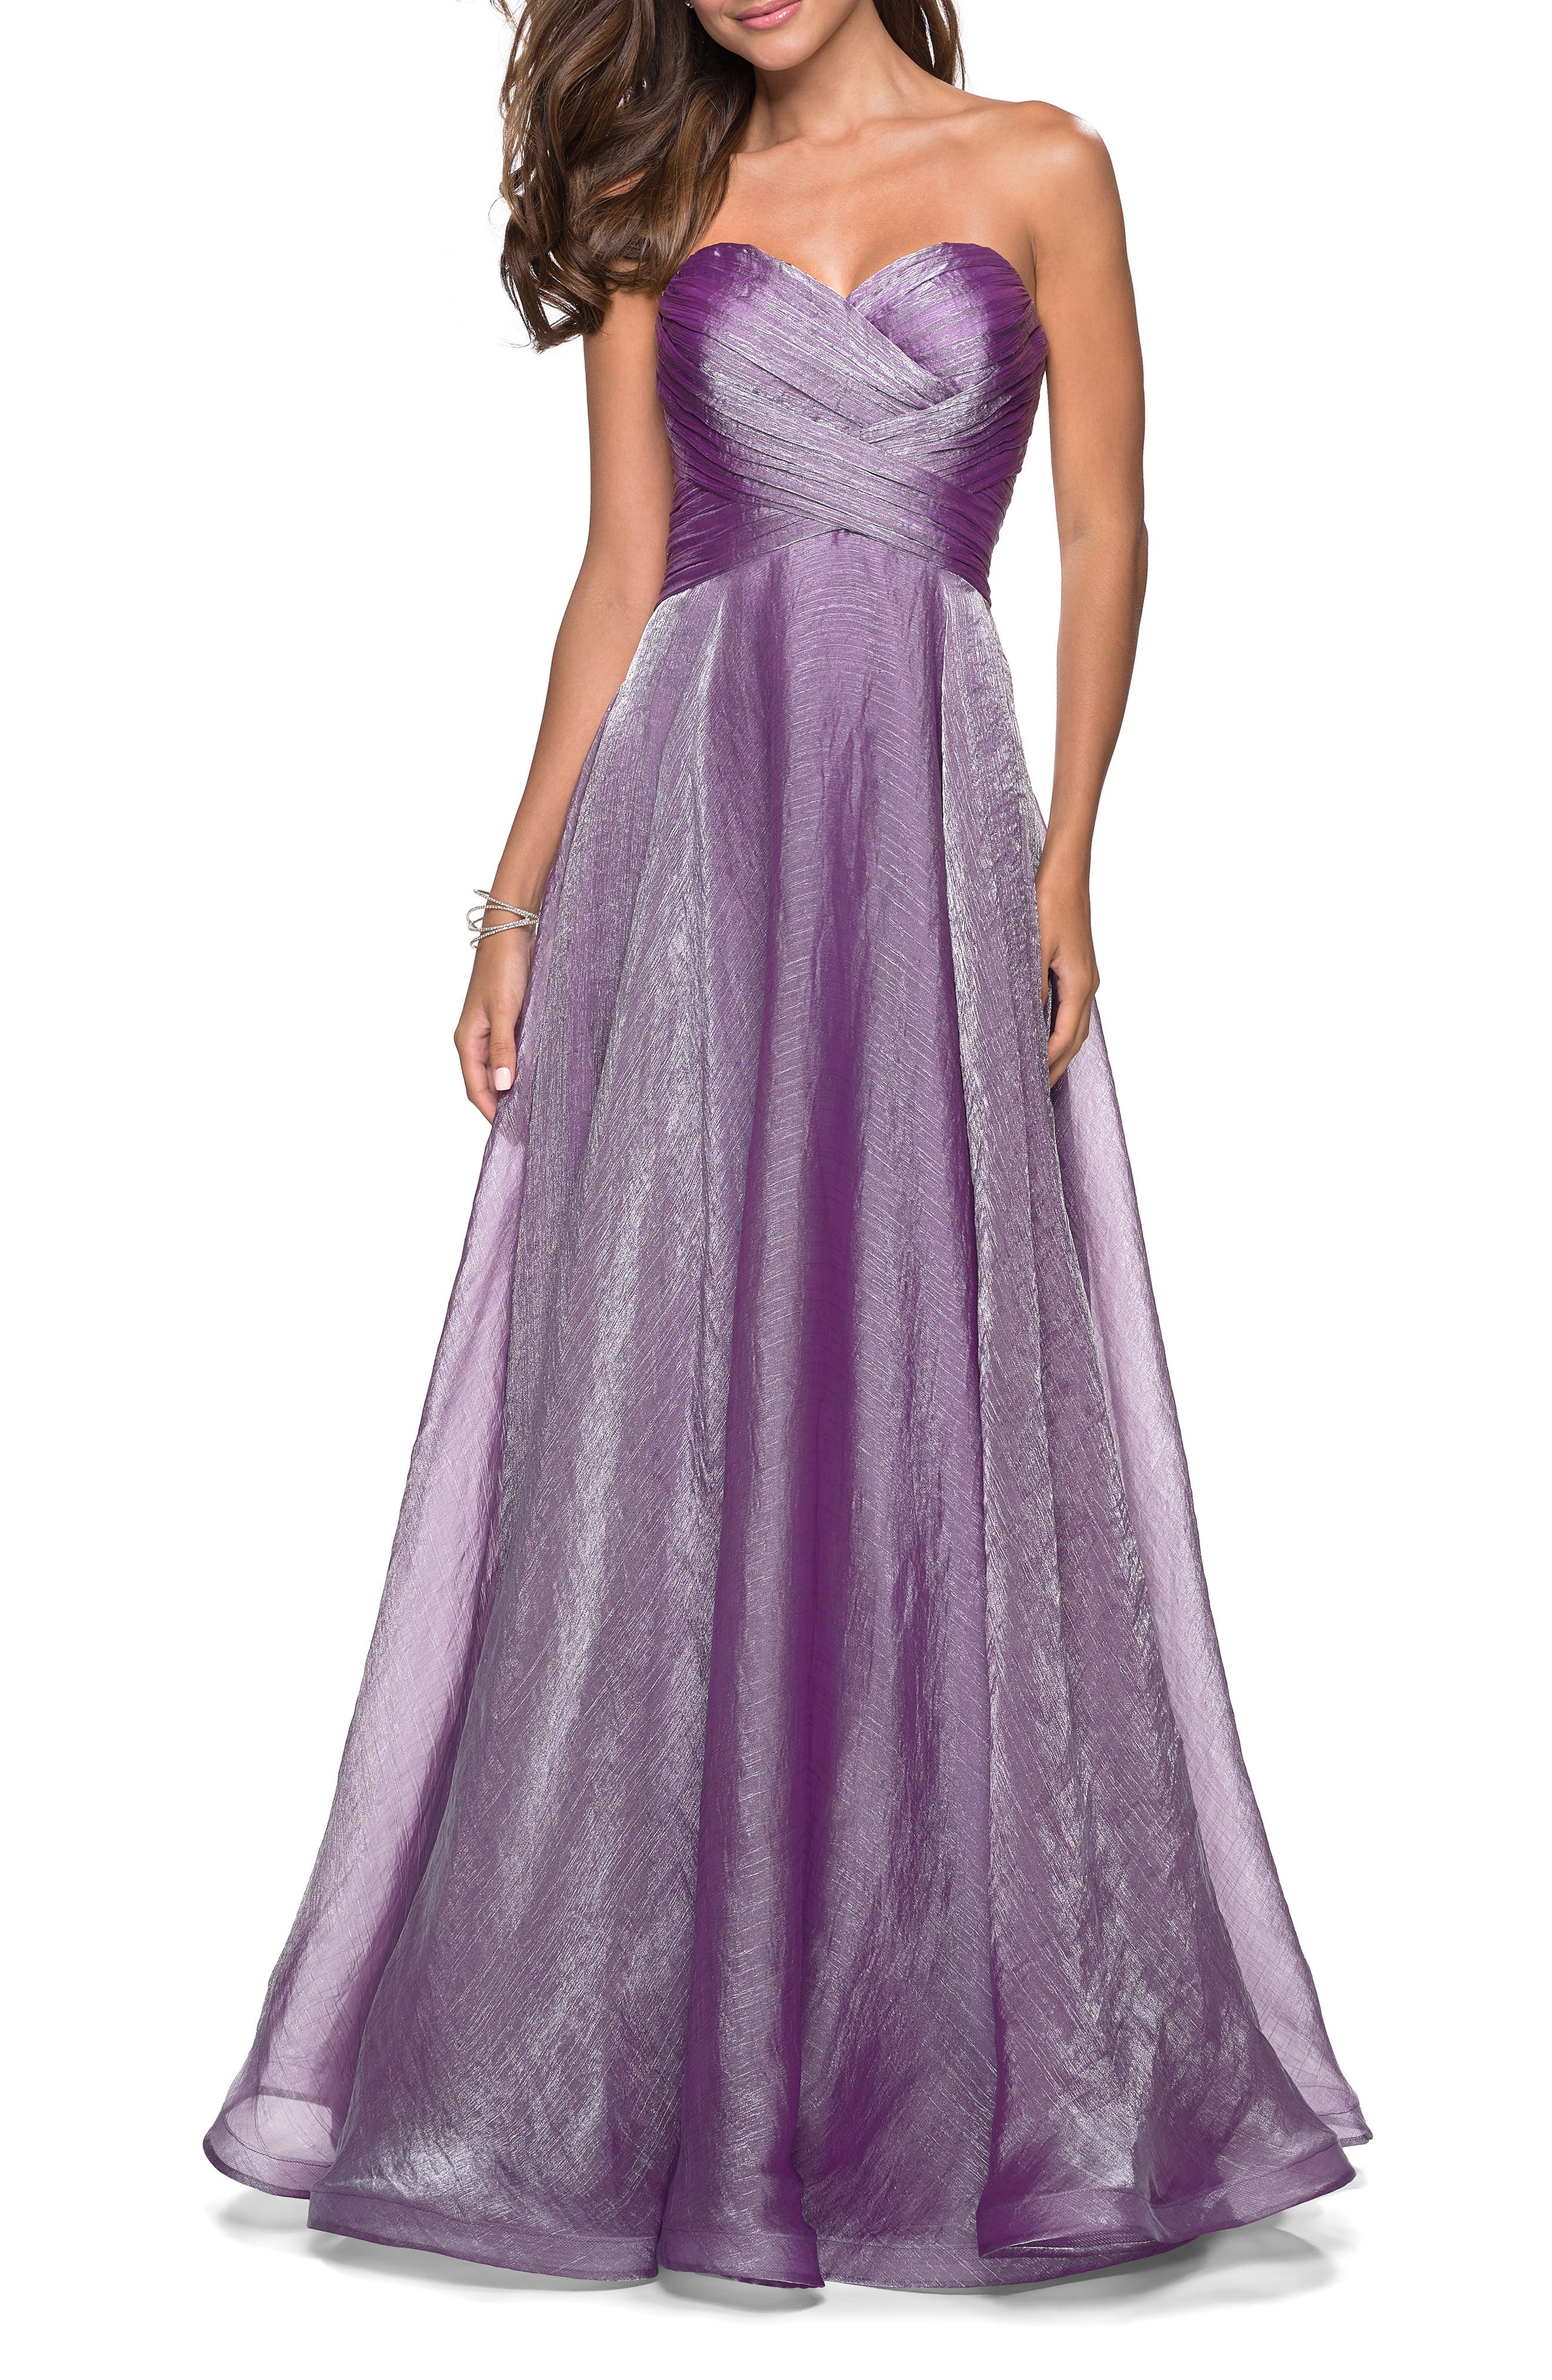 La Femme Strapless Metallic Chiffon Evening Dress, 8 (similar to 16W-18W) - Purple